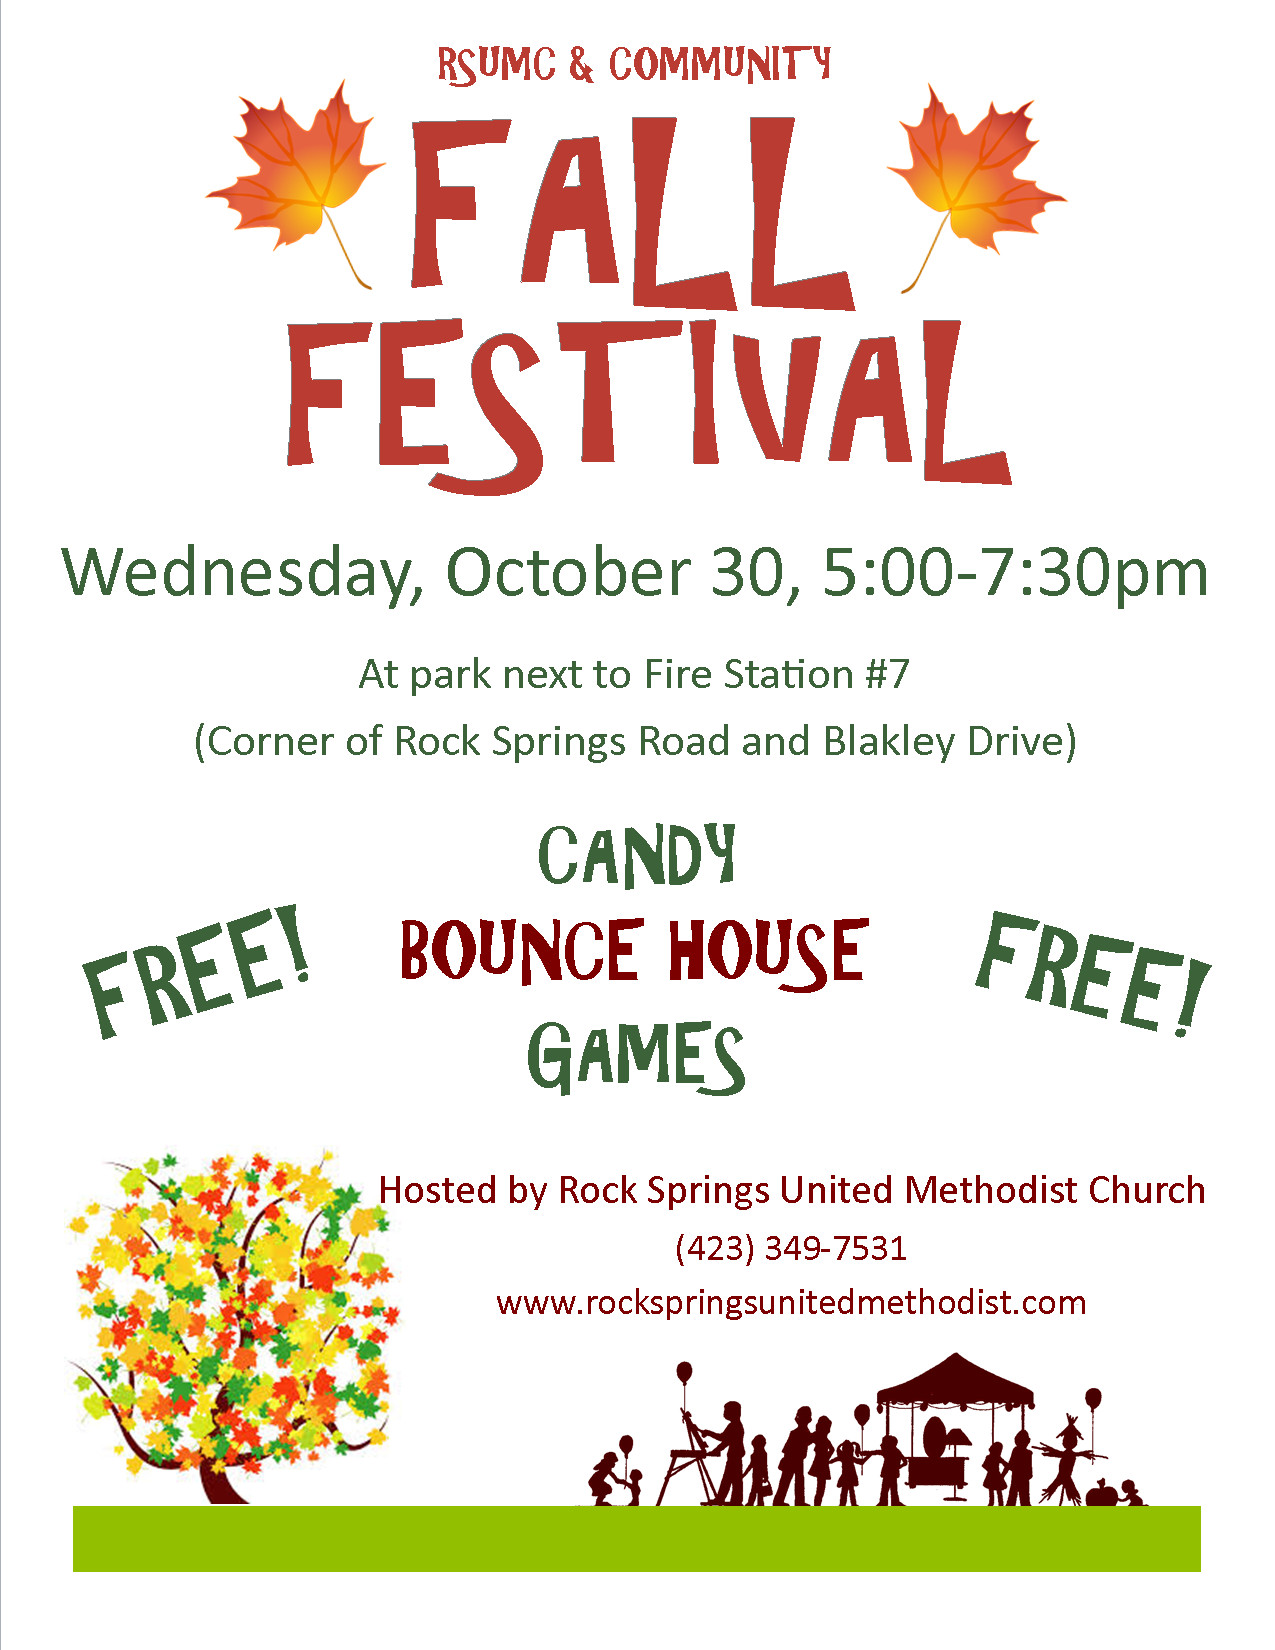 Fall Festival Flyer Templates Fall Festival Flyer Template Google Search